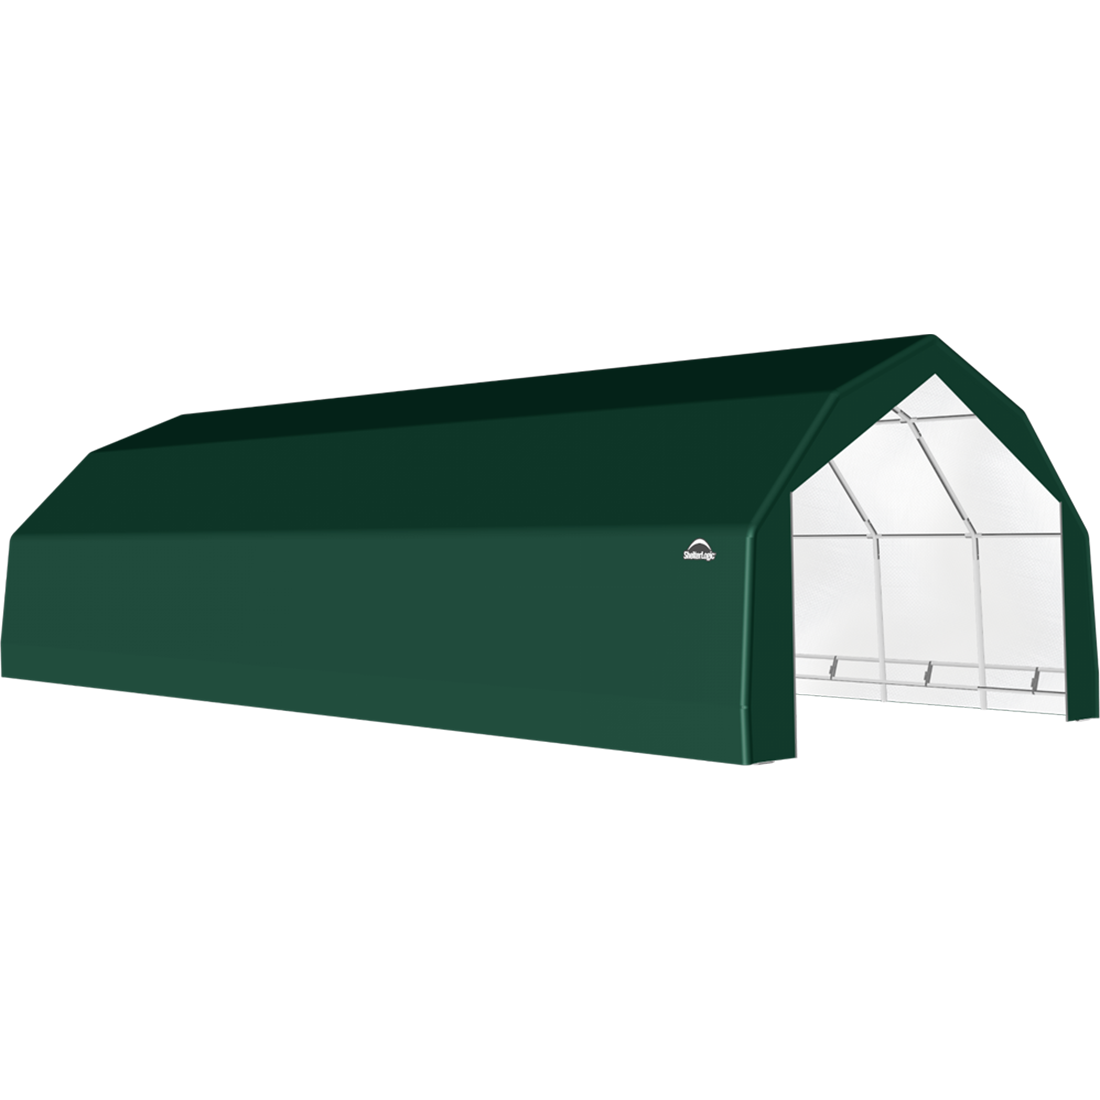 SP Barn 20X32X12 Green 14 oz PE Shelter